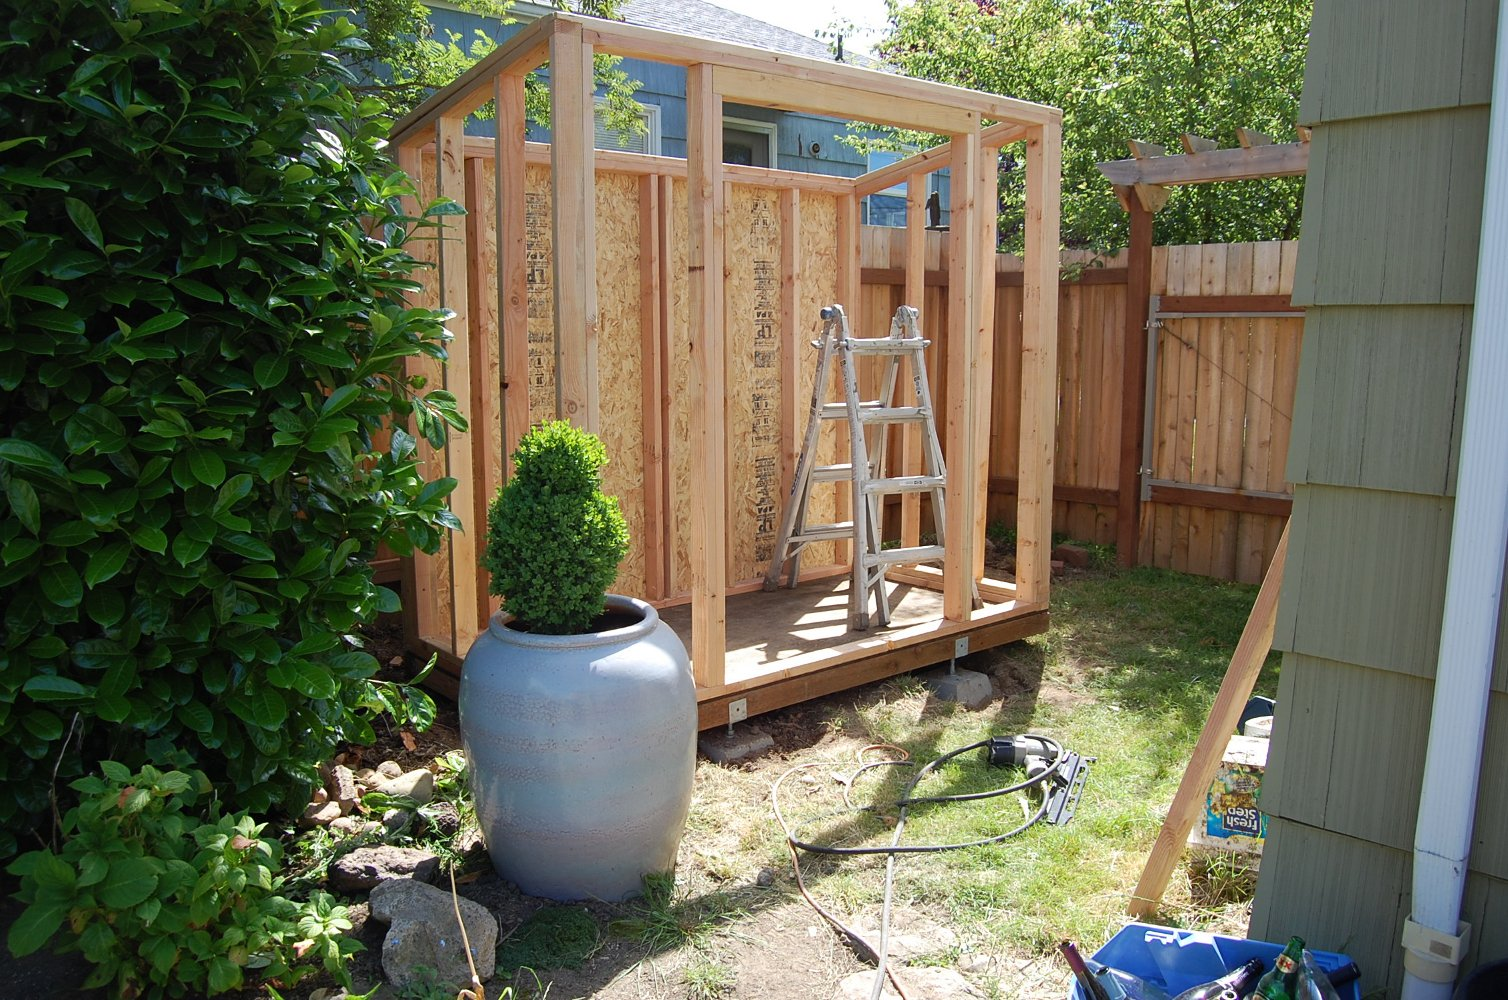 Building A Shed : All About Bicycle Storage Shed Plans | Shed Plans ...